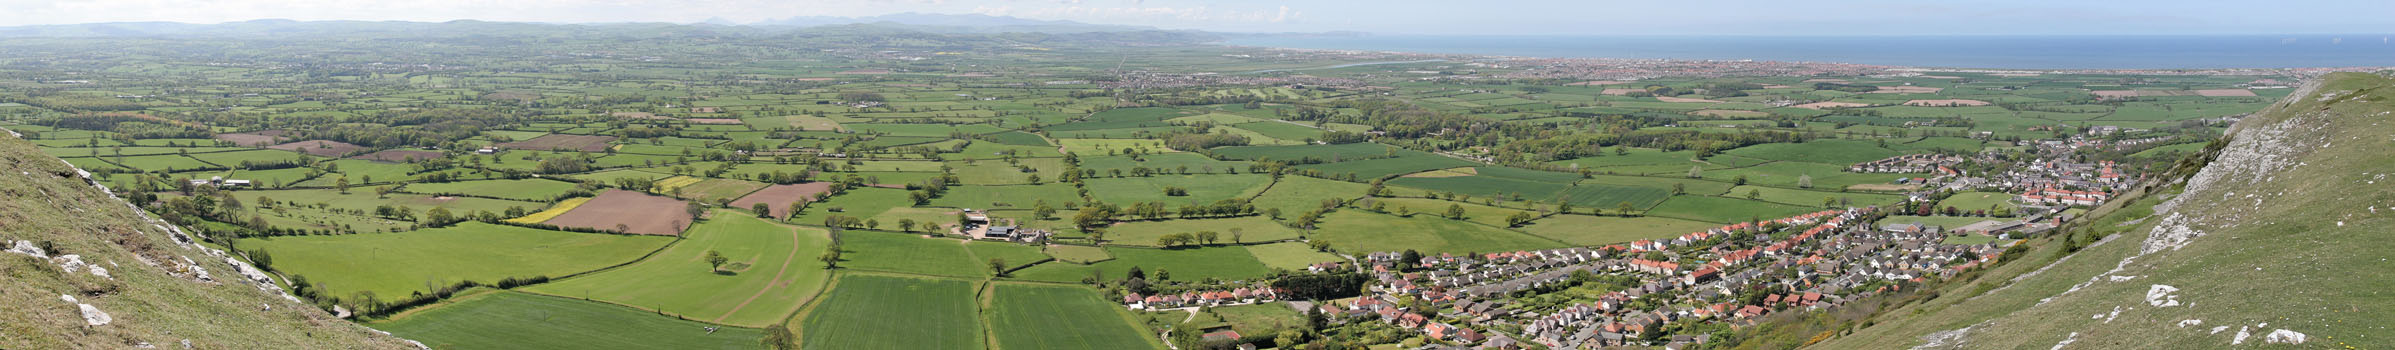 Panorama from Moel Hiraddug across the Vale of Clwyd and towards the sea, Dyserth